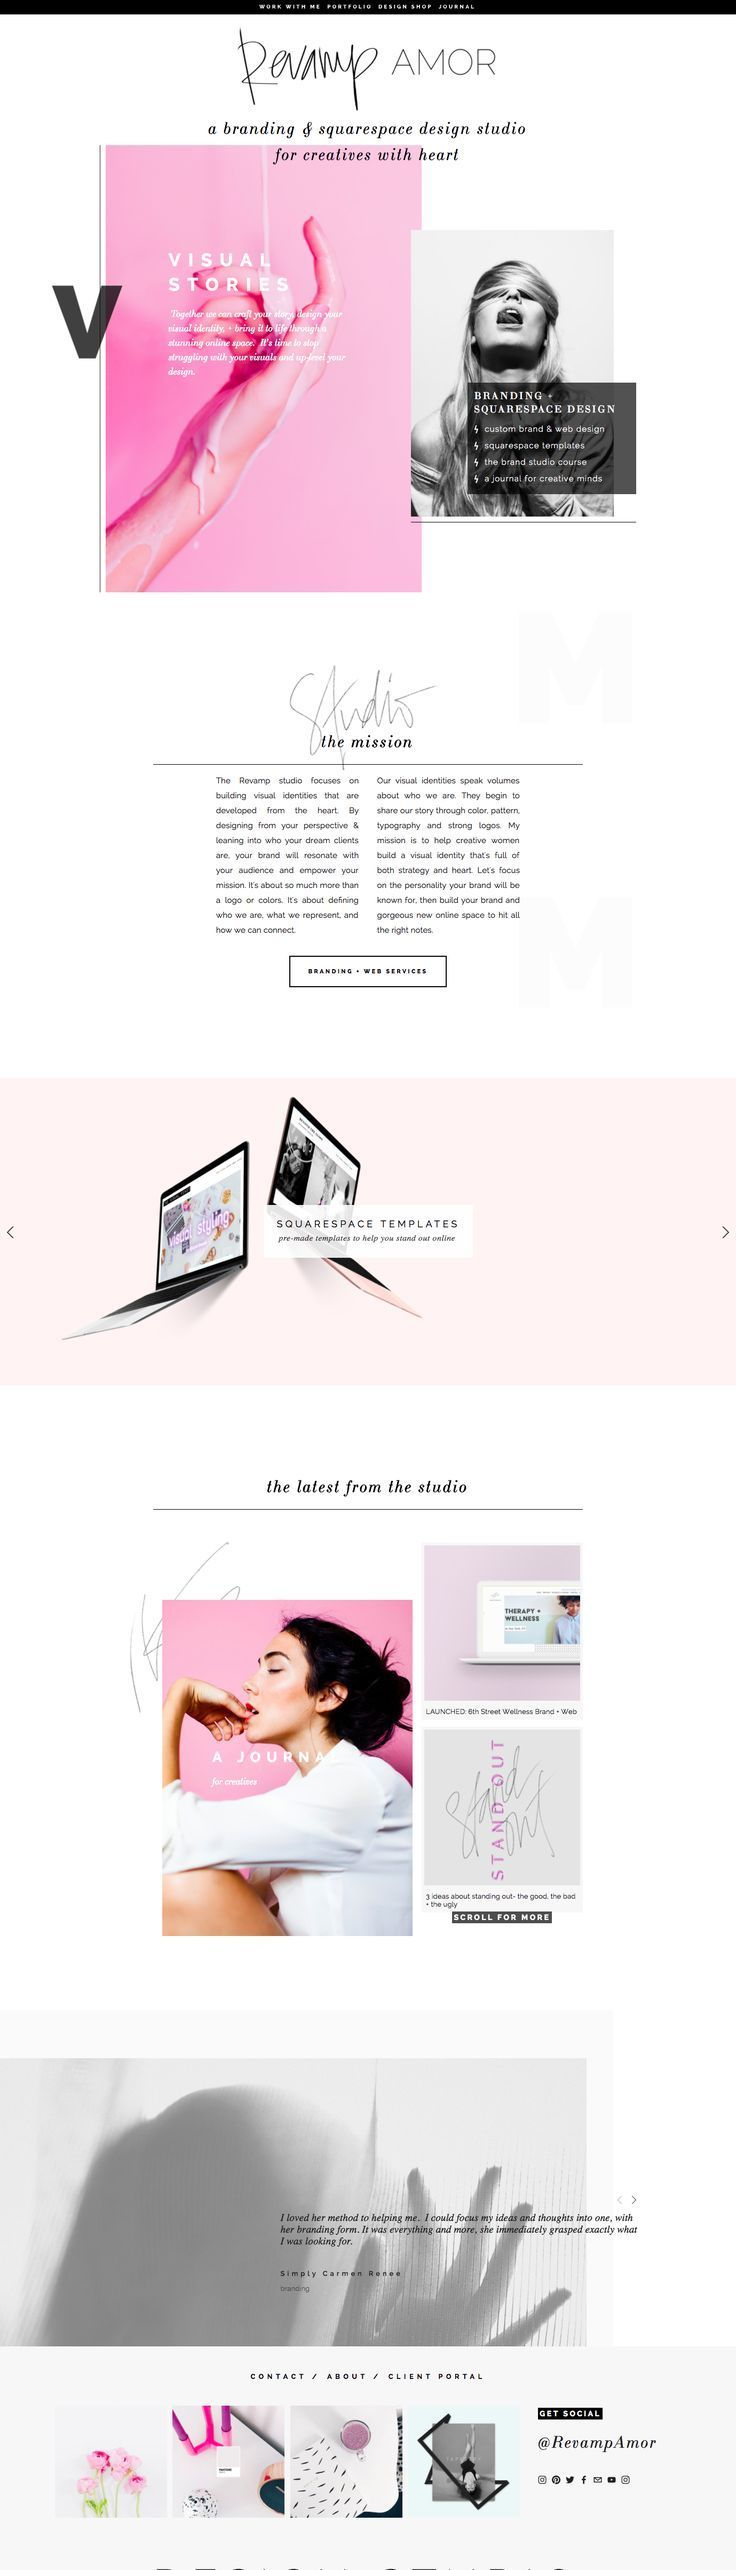 squarespace web design for bloggers and entrepreneurs. custom branding and design for modern, feminine and creative thinkers